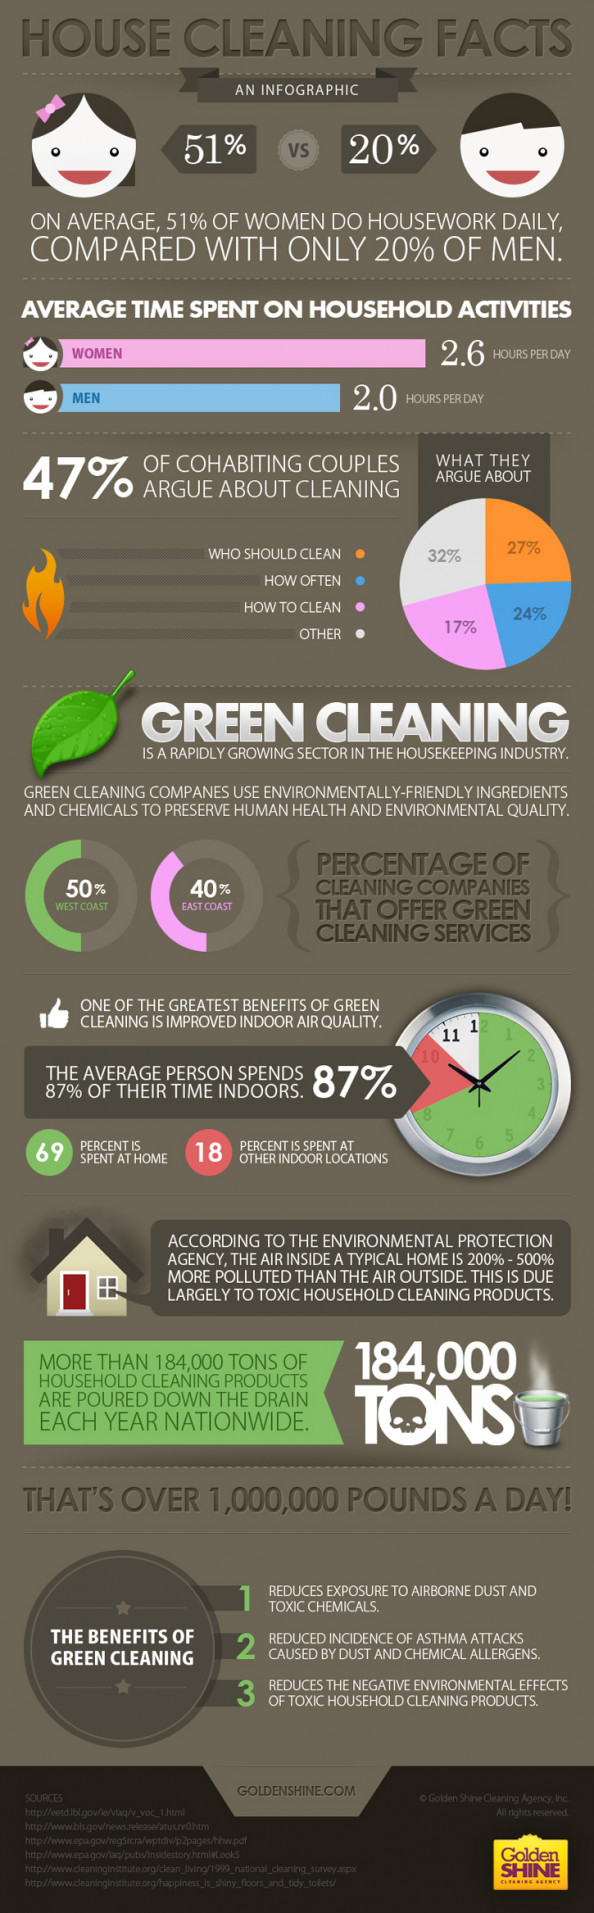 House Cleaning Facts Infographic